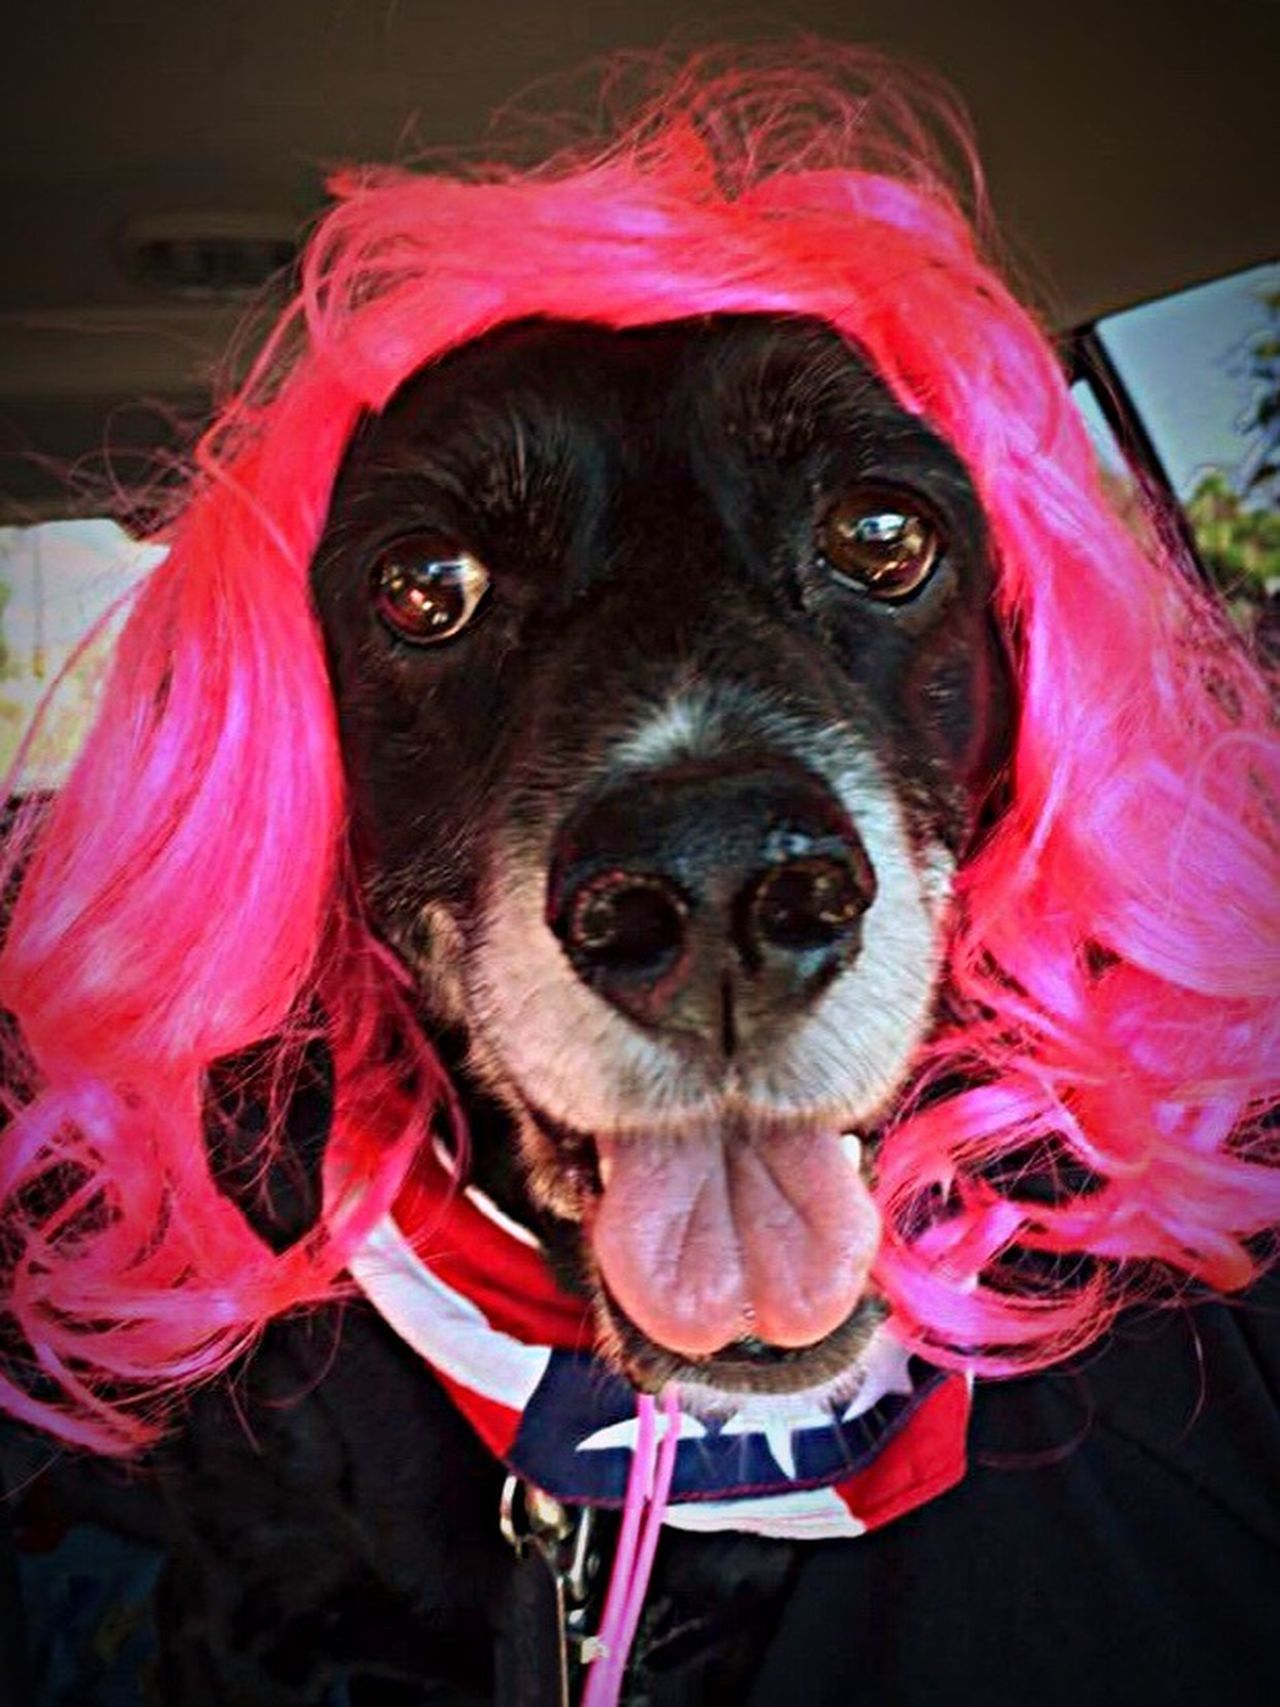 I Love Color❤️ Let Your Hair Down Colorsplash Cheese! Neon Pink Wig Dog In A Wig Love My Dog  Hello World Relaxing Hanging Out EyeEm Gallery Enjoying Life Taking Photos Check This Out That's Me EyeEm Best Shots Hair